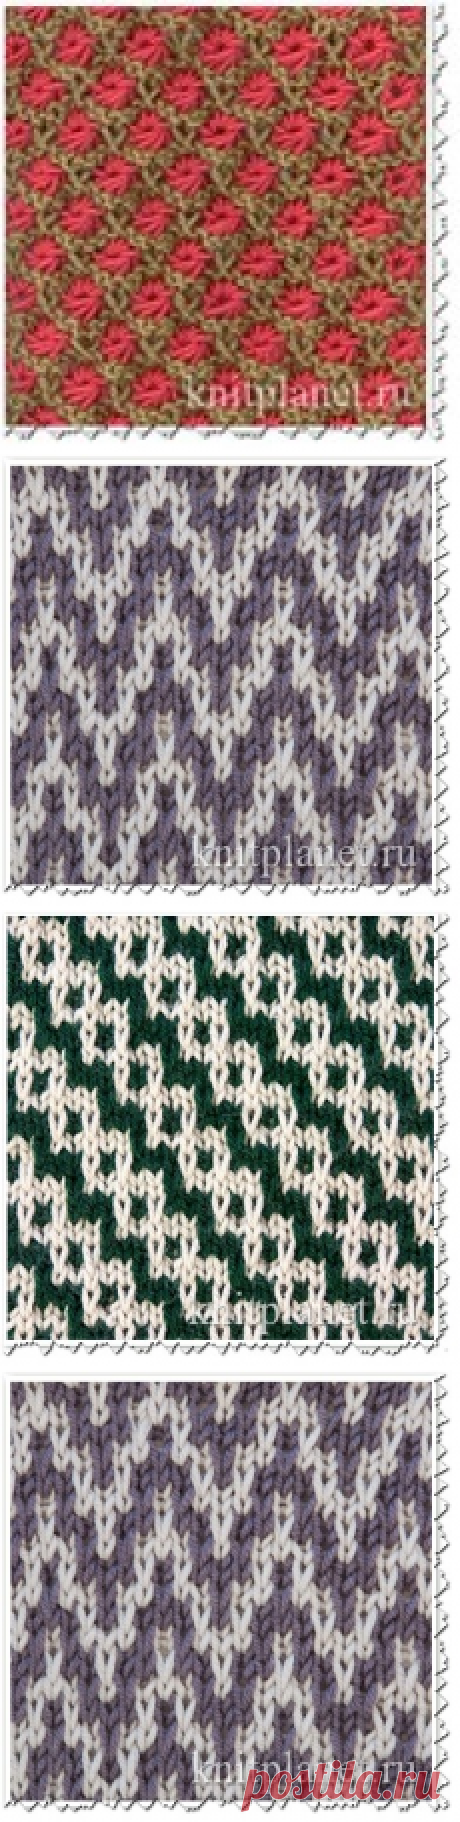 Lazy jacquard patterns. Discussion on Blogs on Work